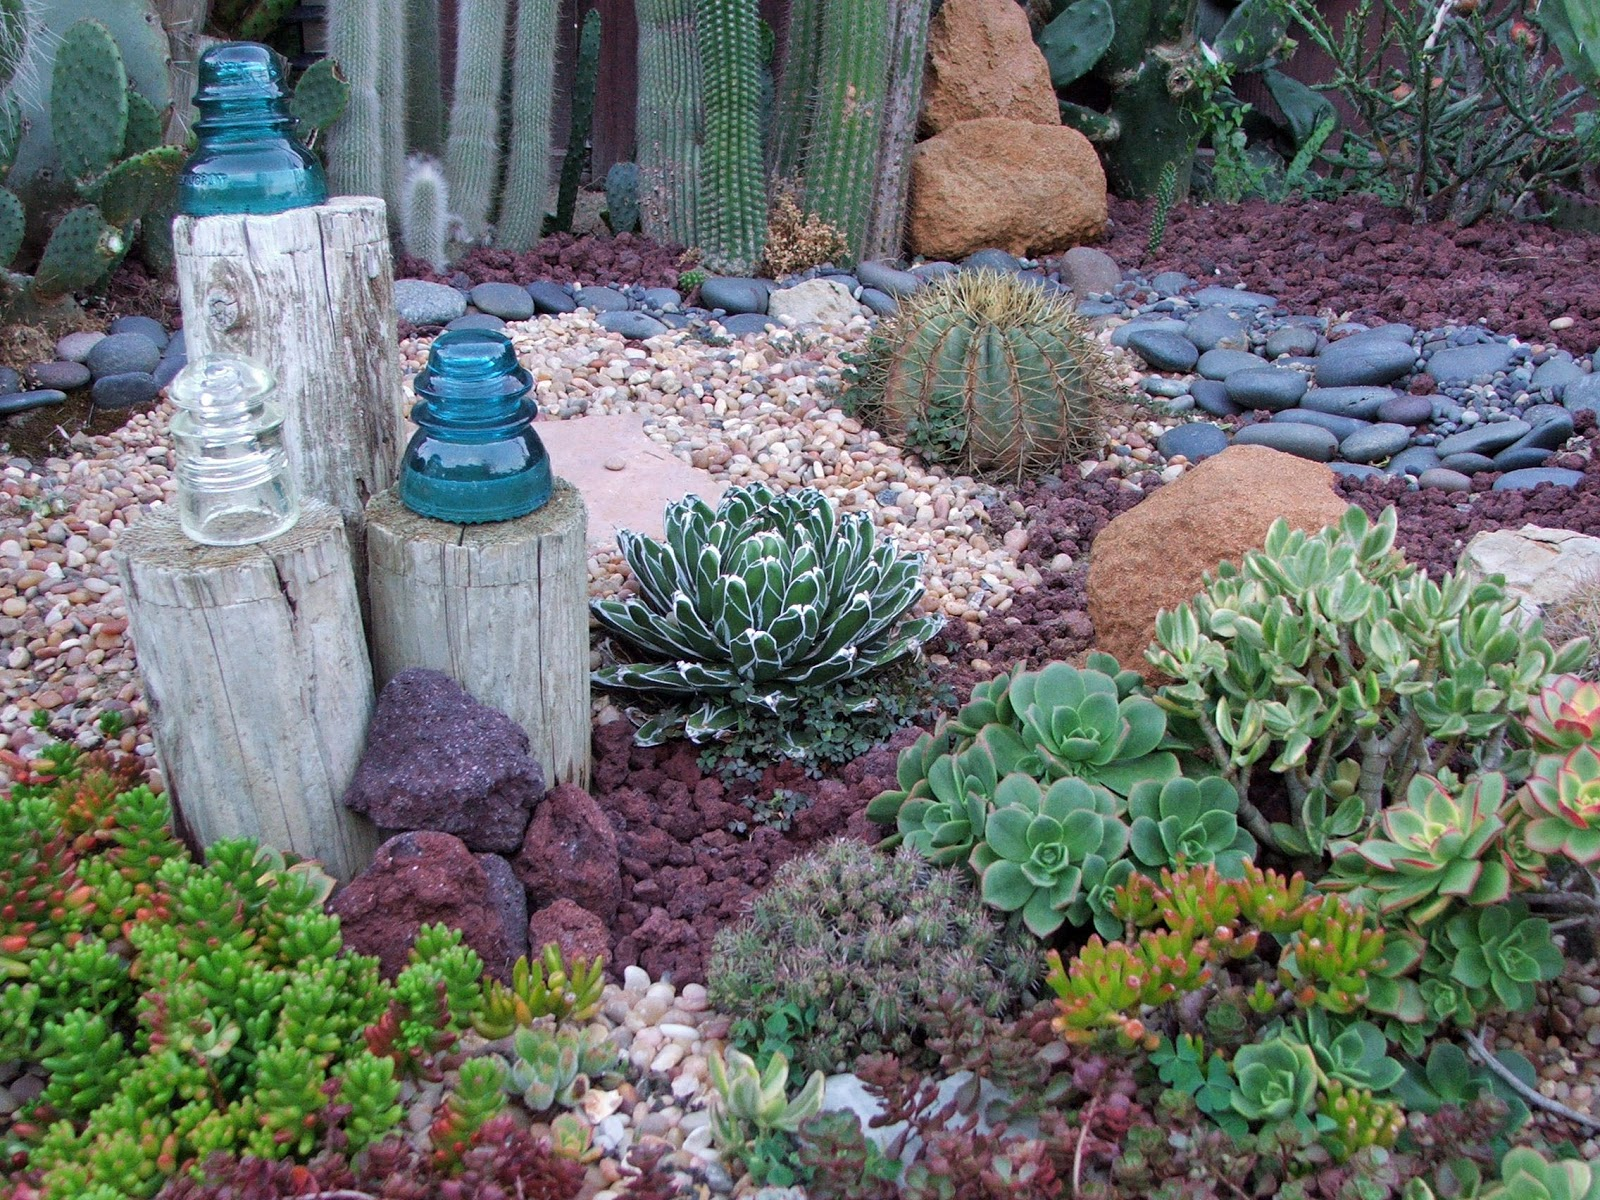 Garden and bliss ocean theme landscaping gallery of photos for Cactus garden designs